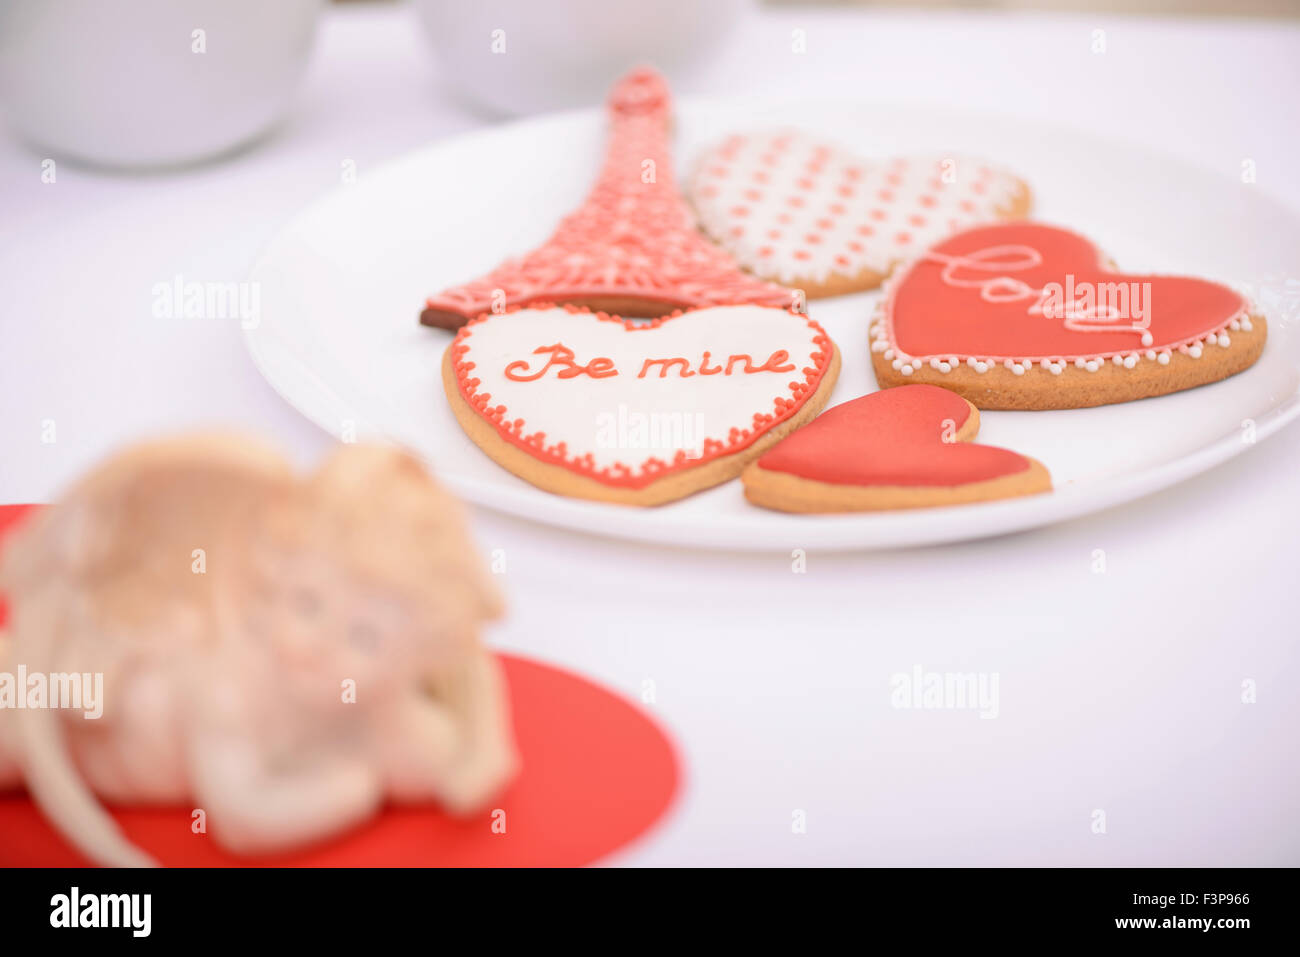 Nice cookies lying on the plate - Stock Image